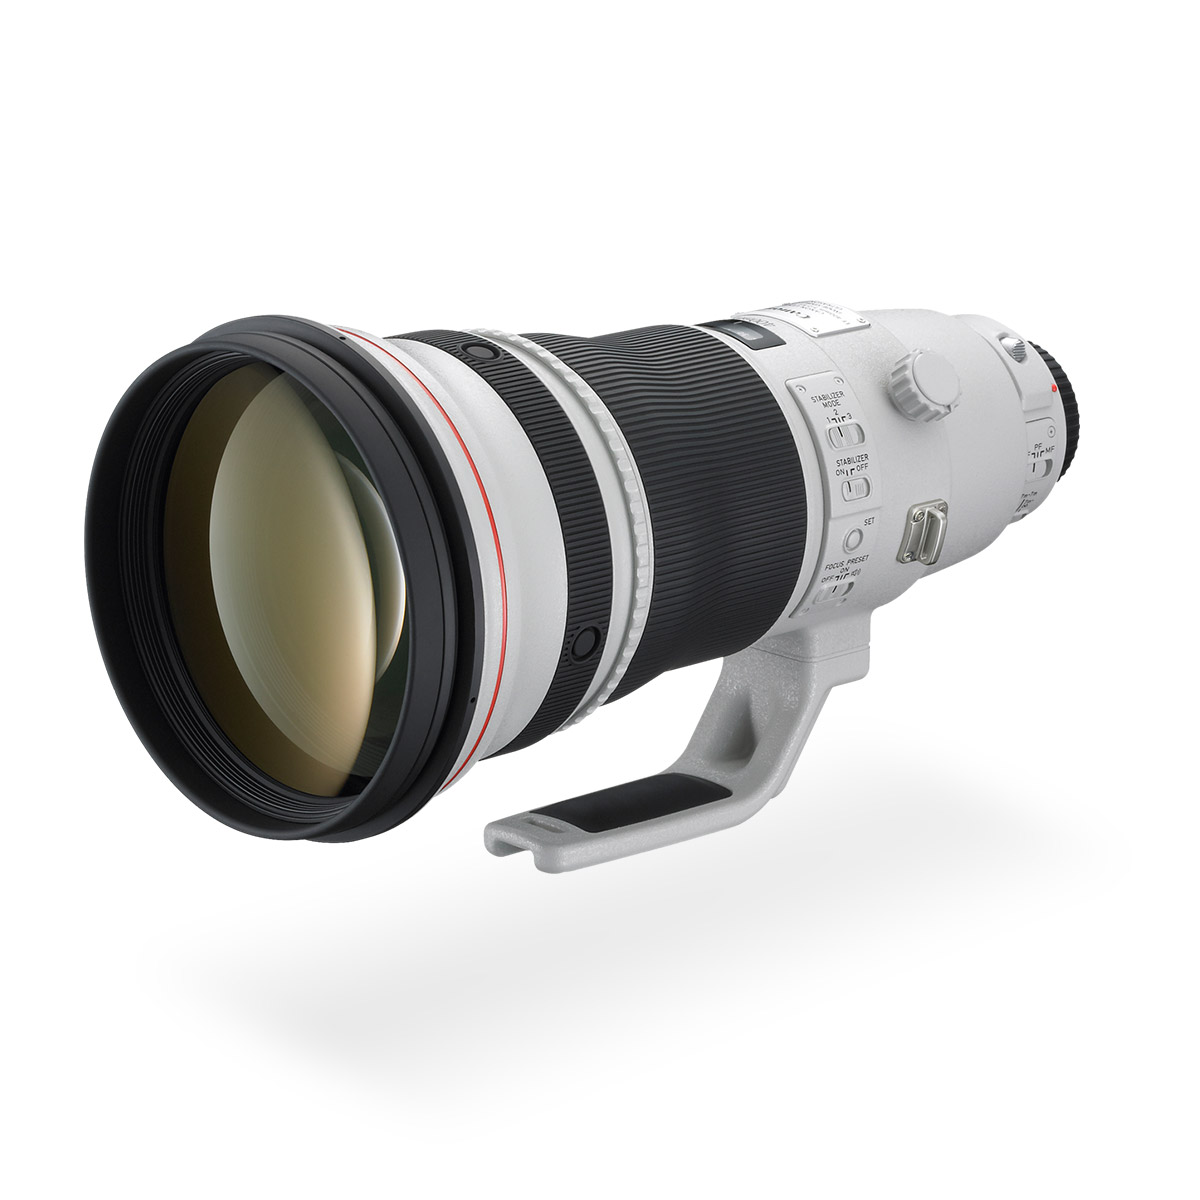 EF 400mm f/2.8L IS II USM lens